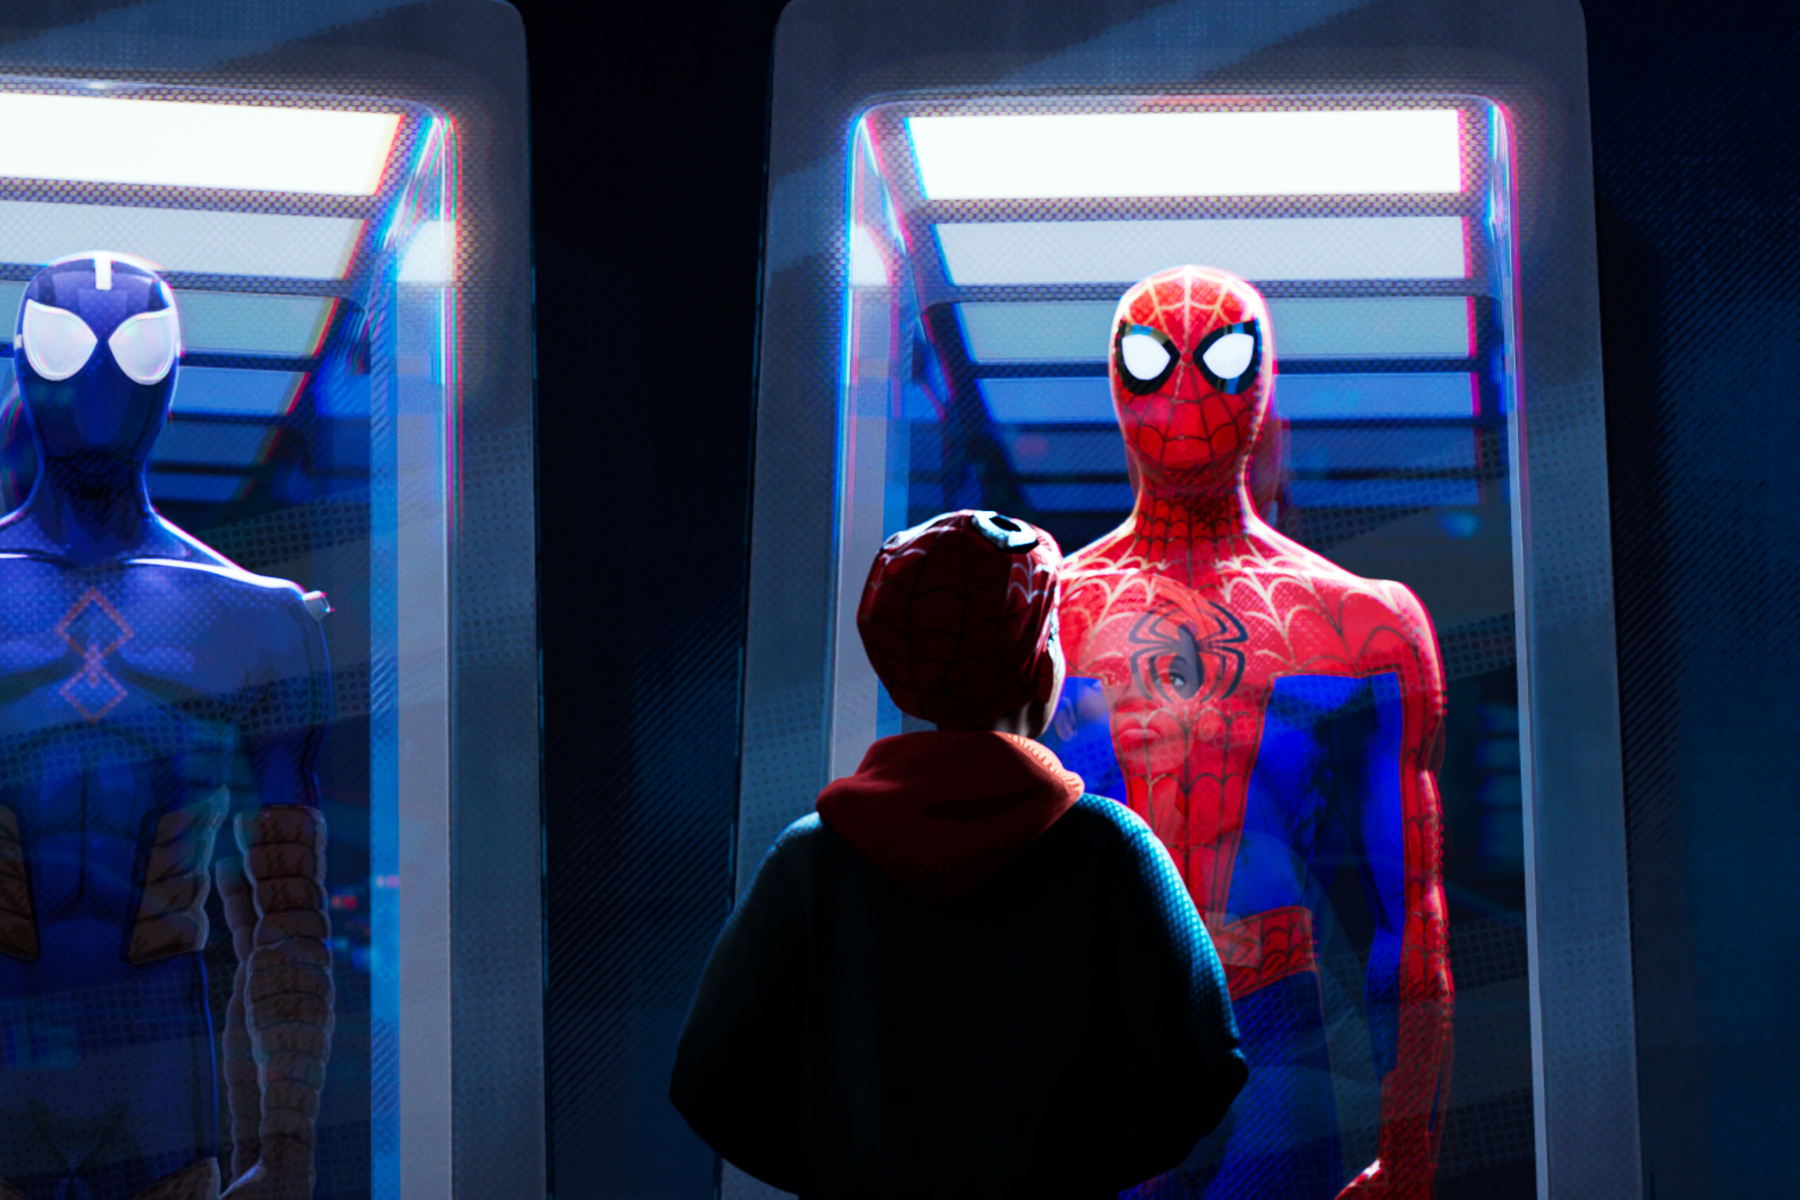 Into the Spider-Verse': The Only Spider-Man Movie You'll Ever Need